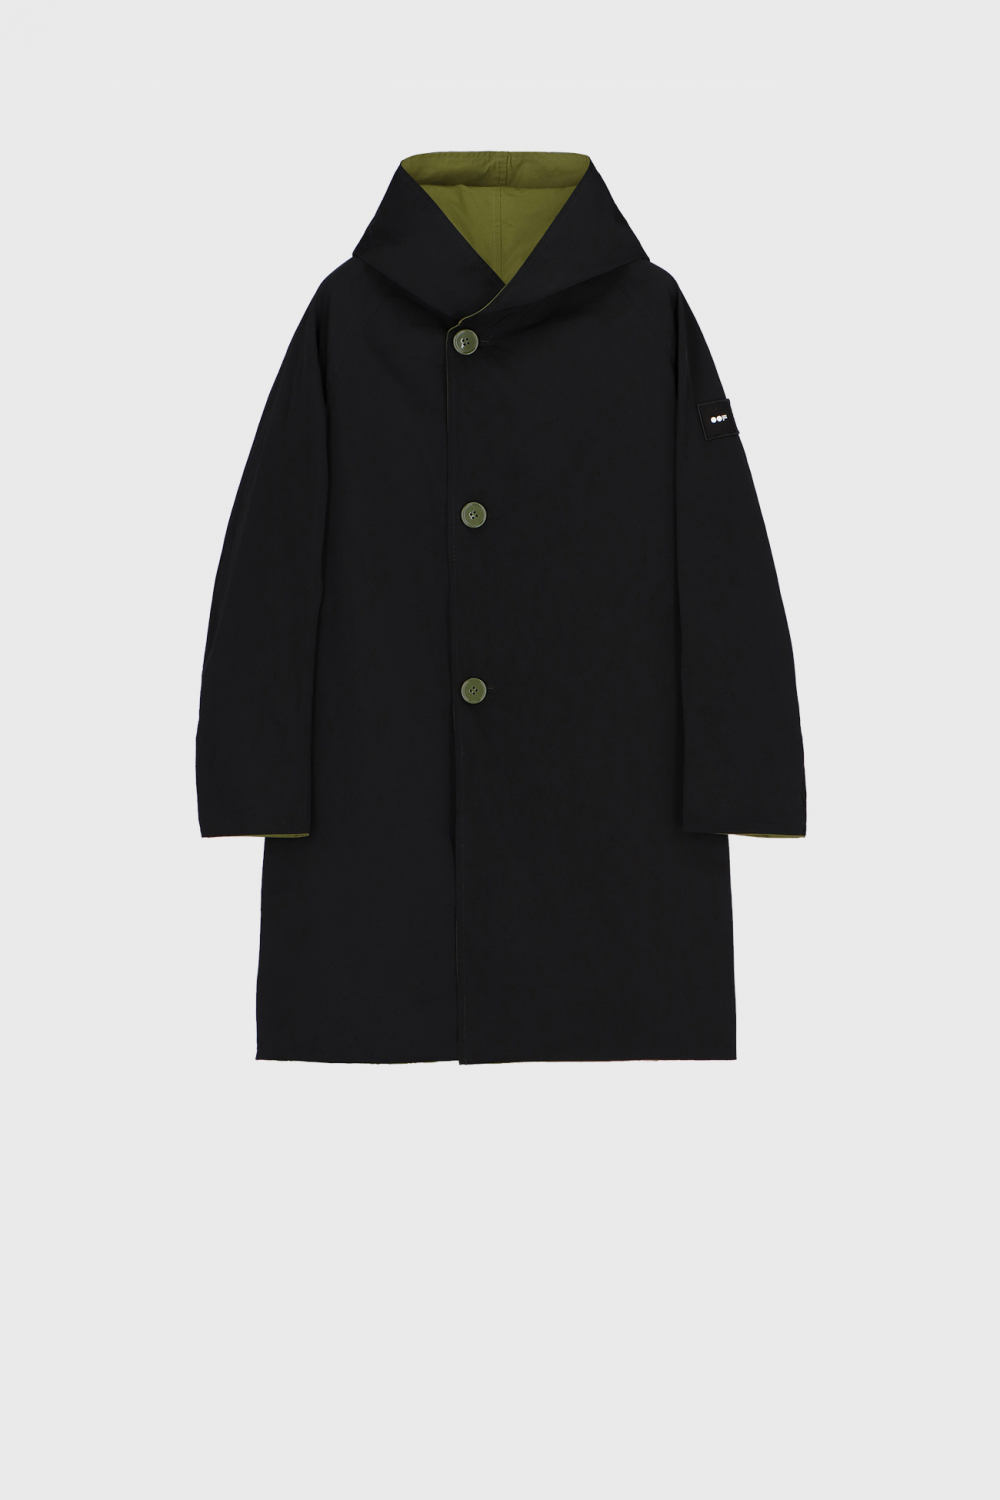 Reversible raincoat with hood in olive and black